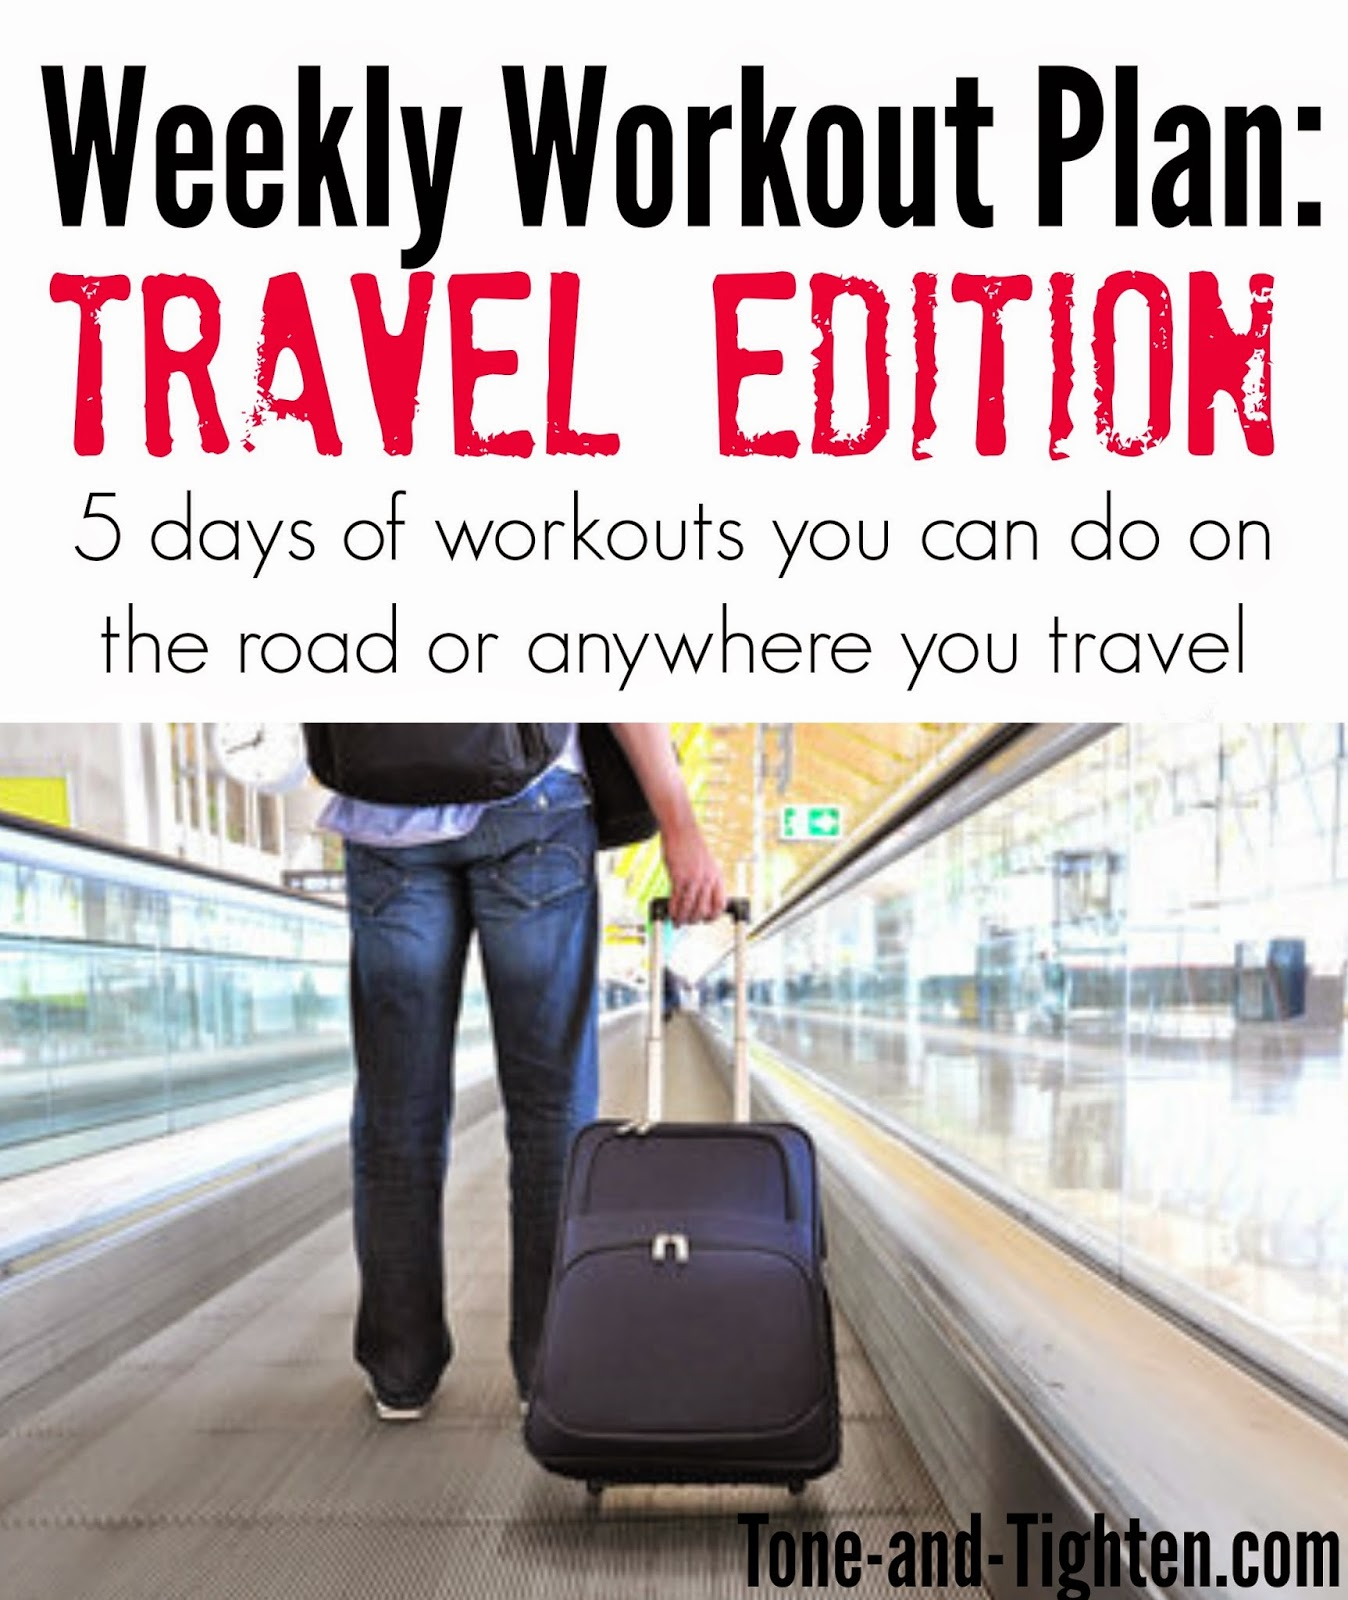 weekly-workout-plan-travel-workouts-tone-and-tighten